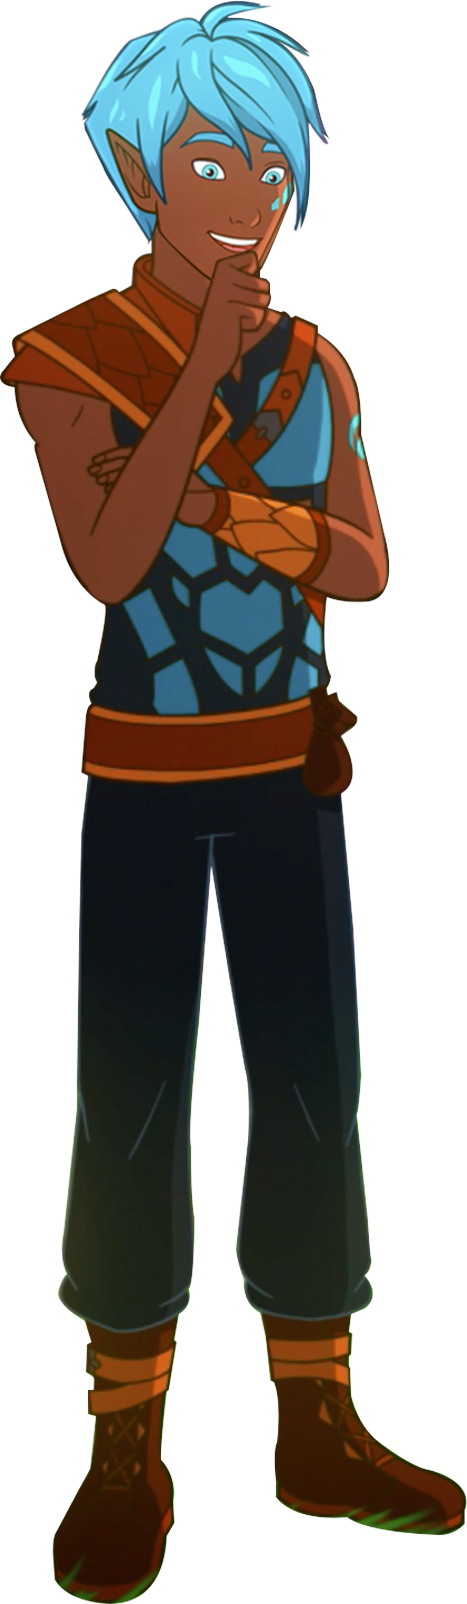 Tidus Stormsurfer | LEGO Elves Wiki | FANDOM powered by Wikia